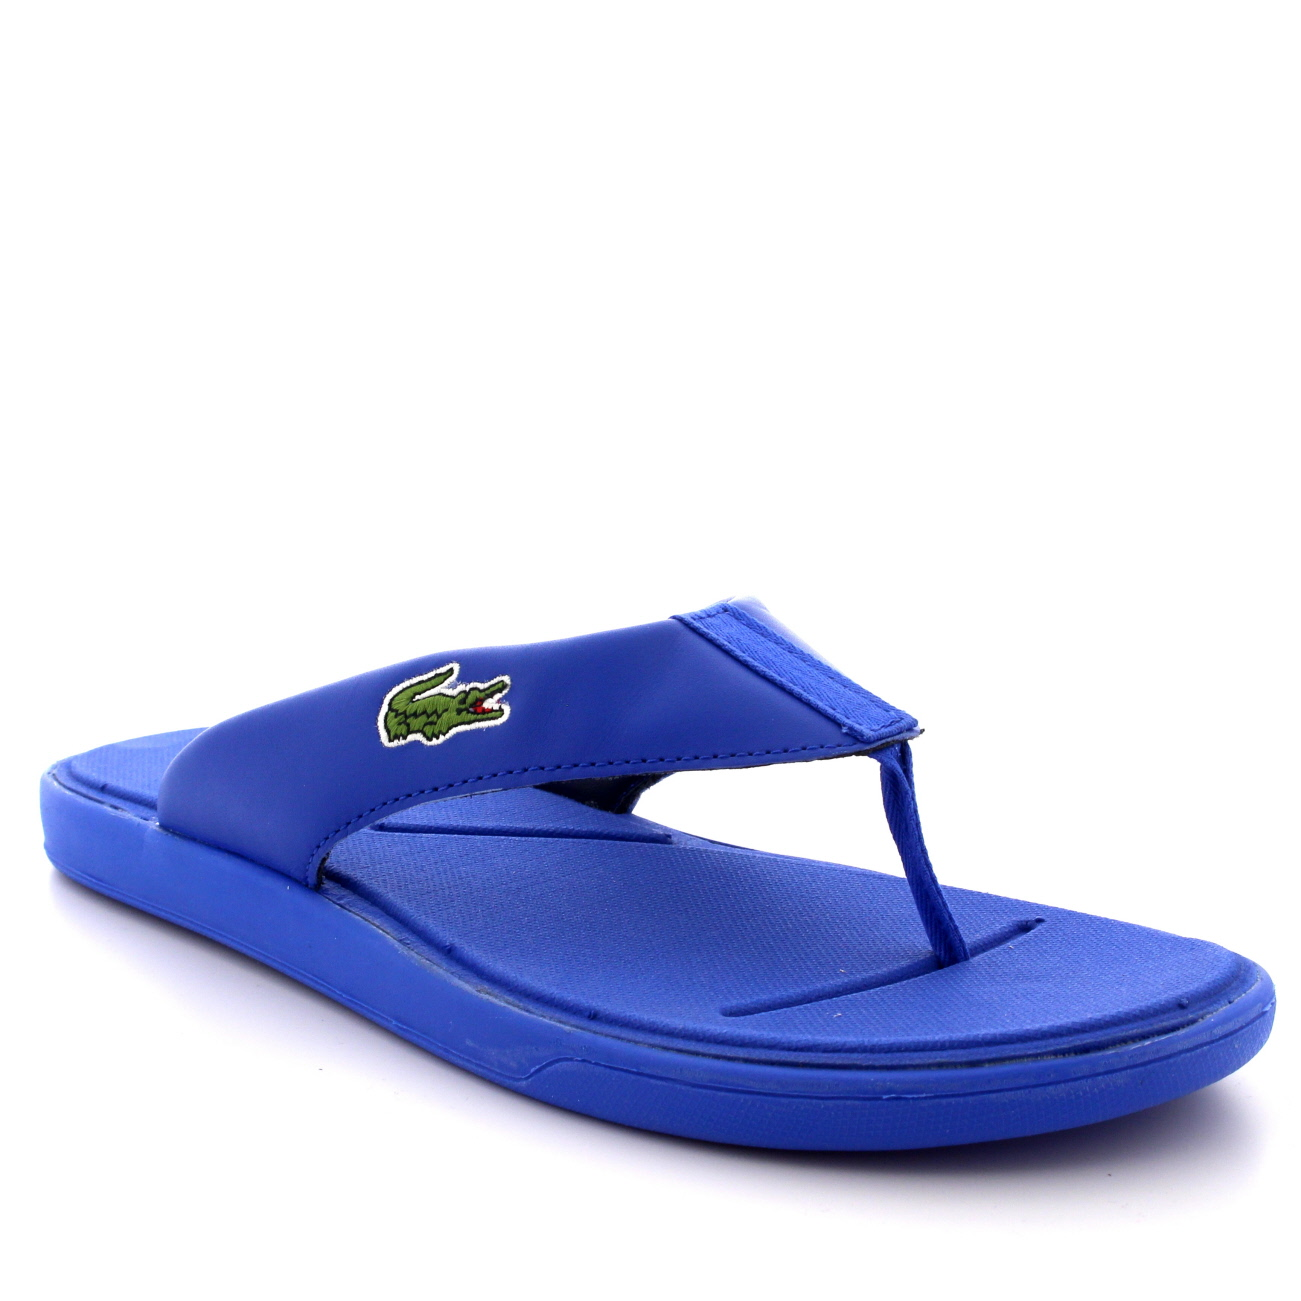 8cd6d3fab Mens Lacoste Light.30 116 Beach Pool Leather Holiday Flip Flops Sandals UK  6-12